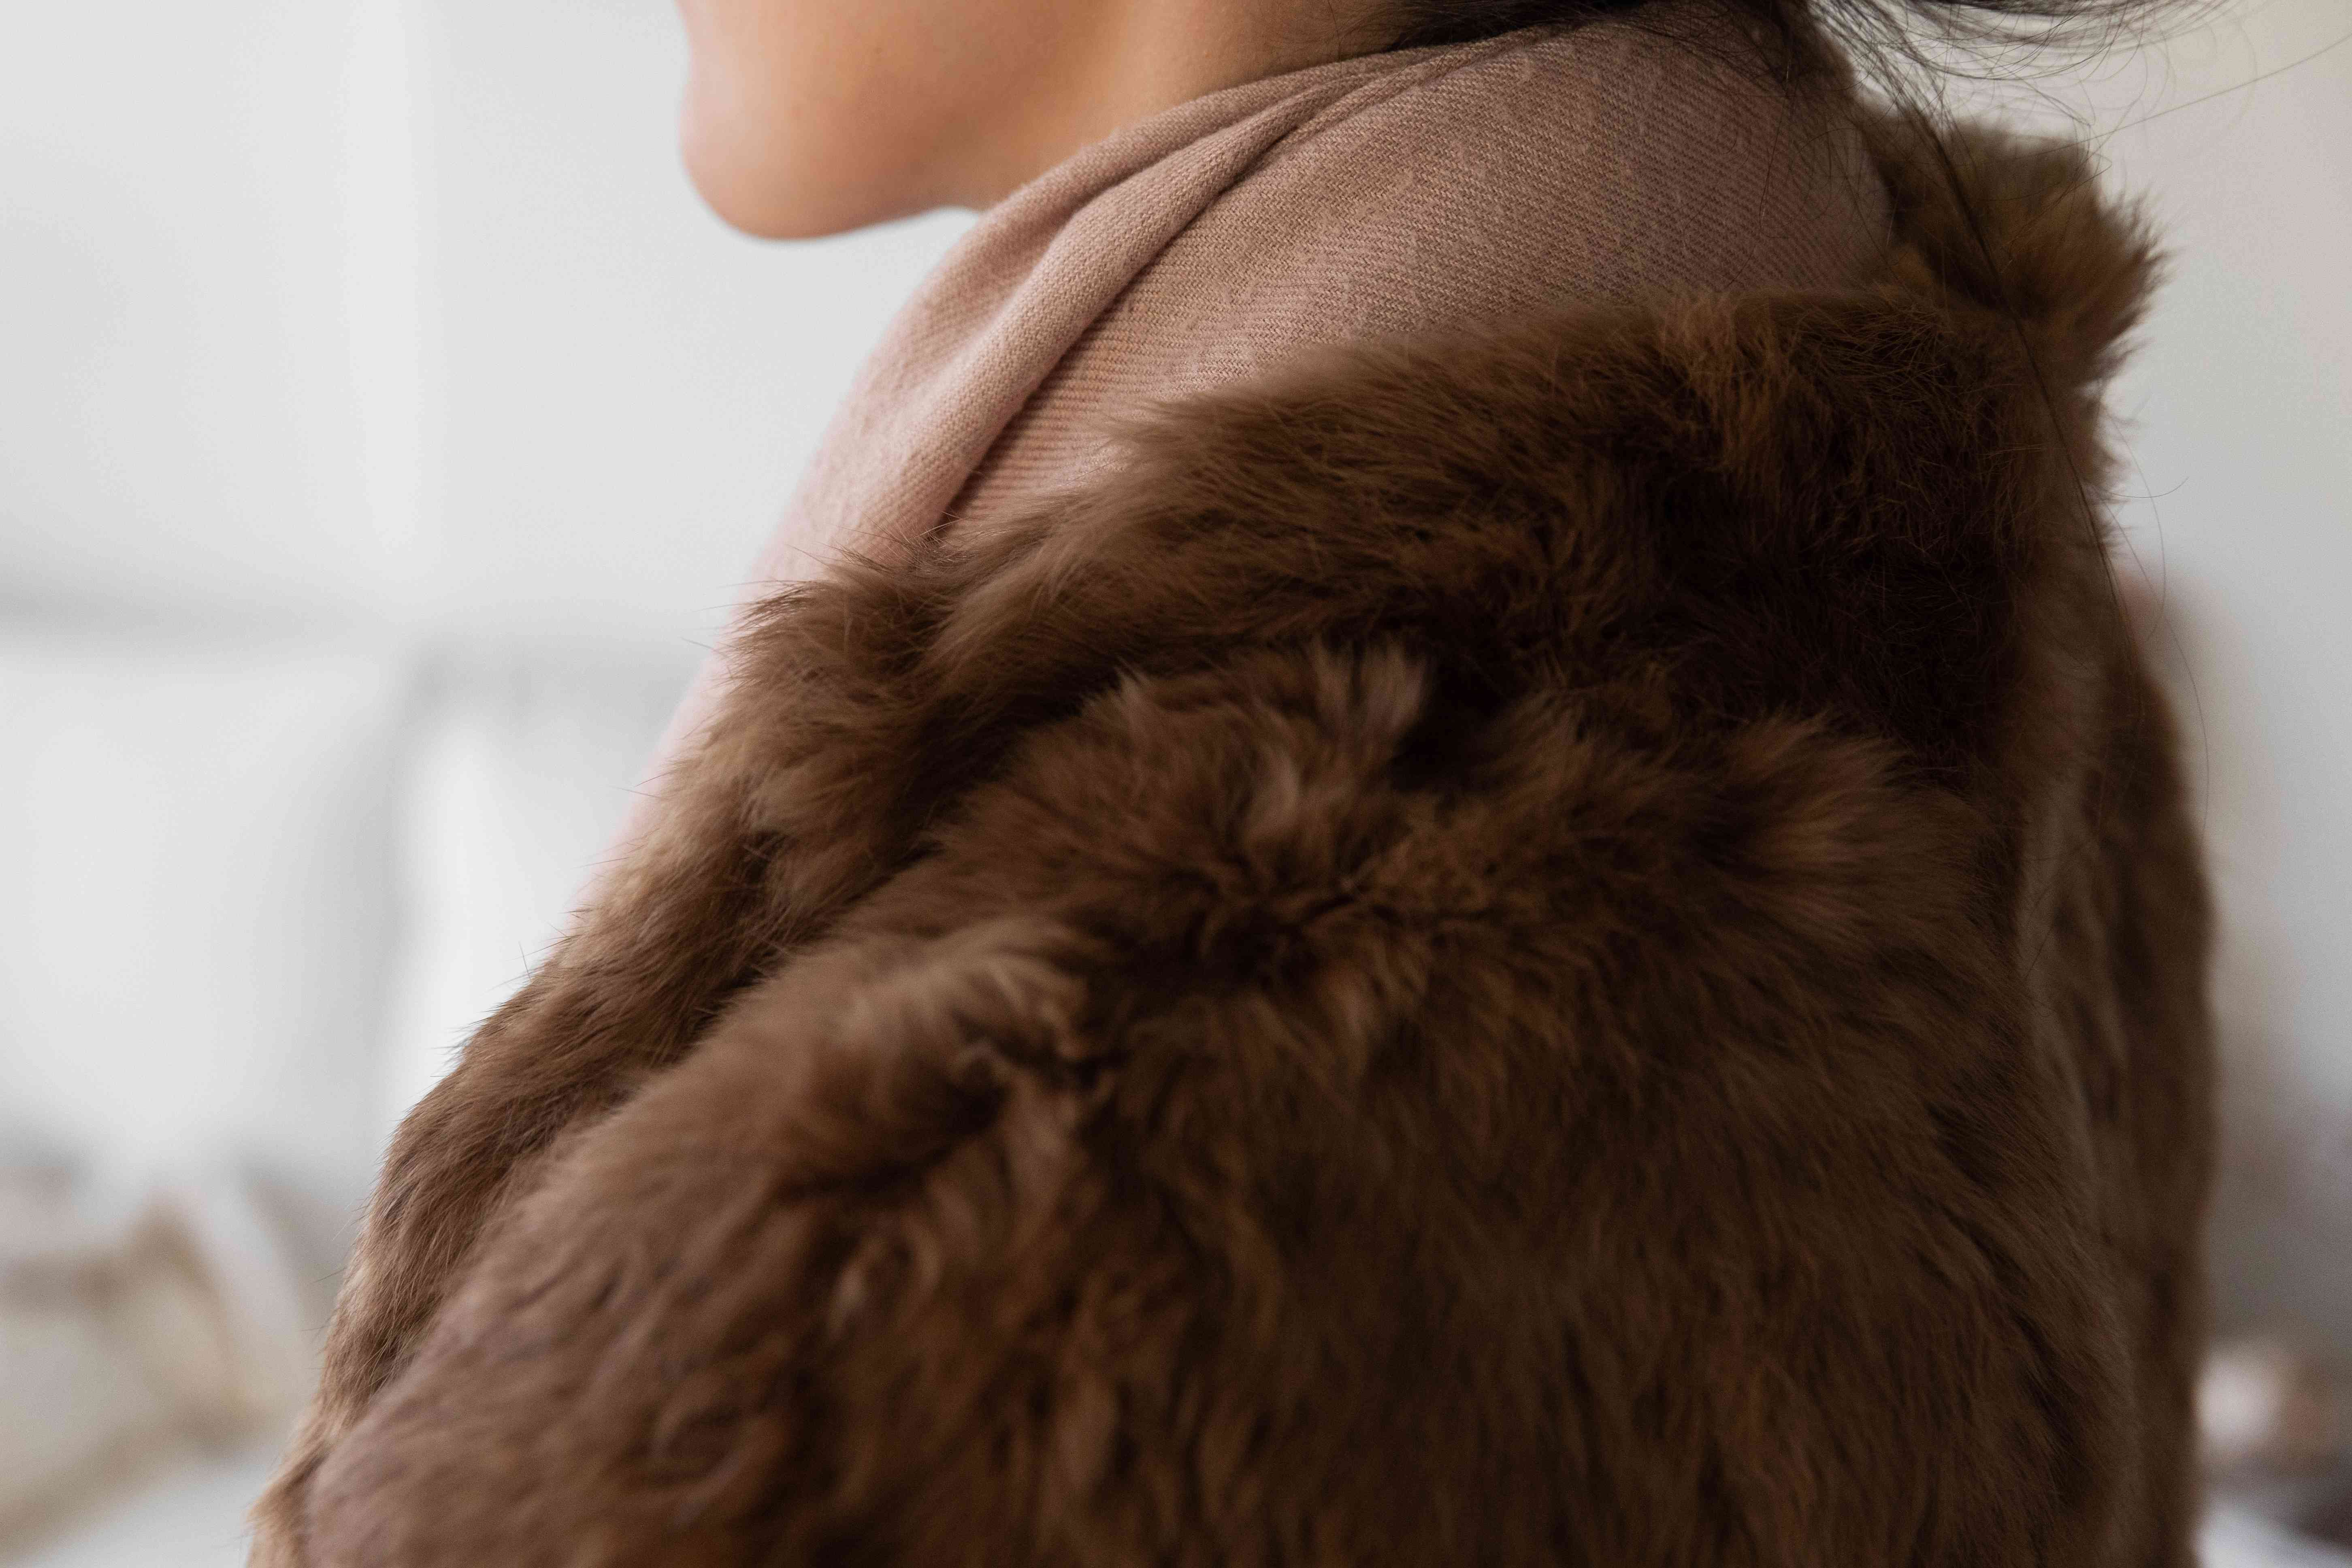 Someone wearing a scarf with a fur coat